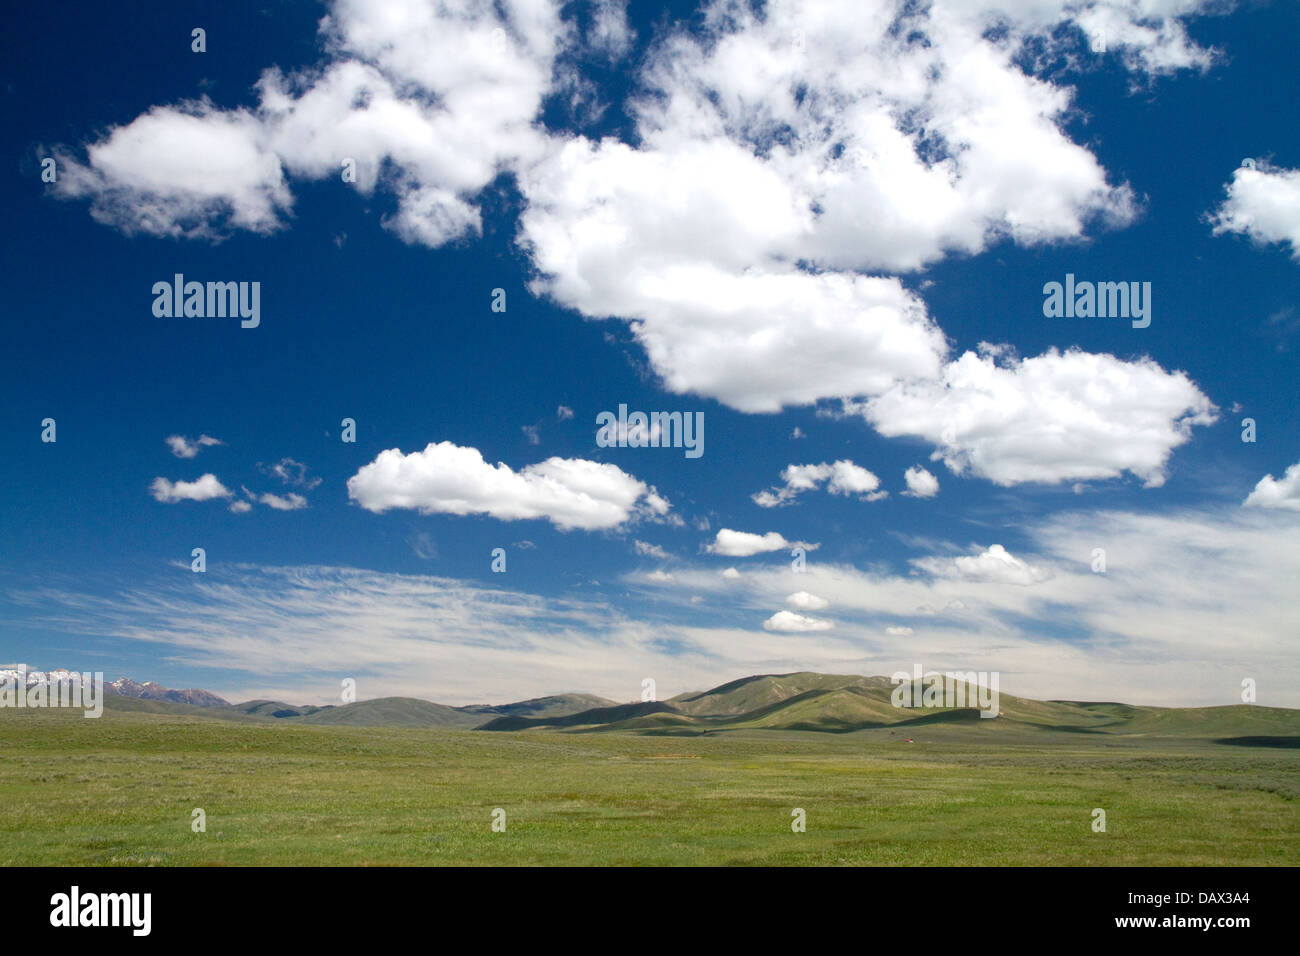 Cumulus clouds and blue sky over green fields near Pine, Idaho, USA. - Stock Image